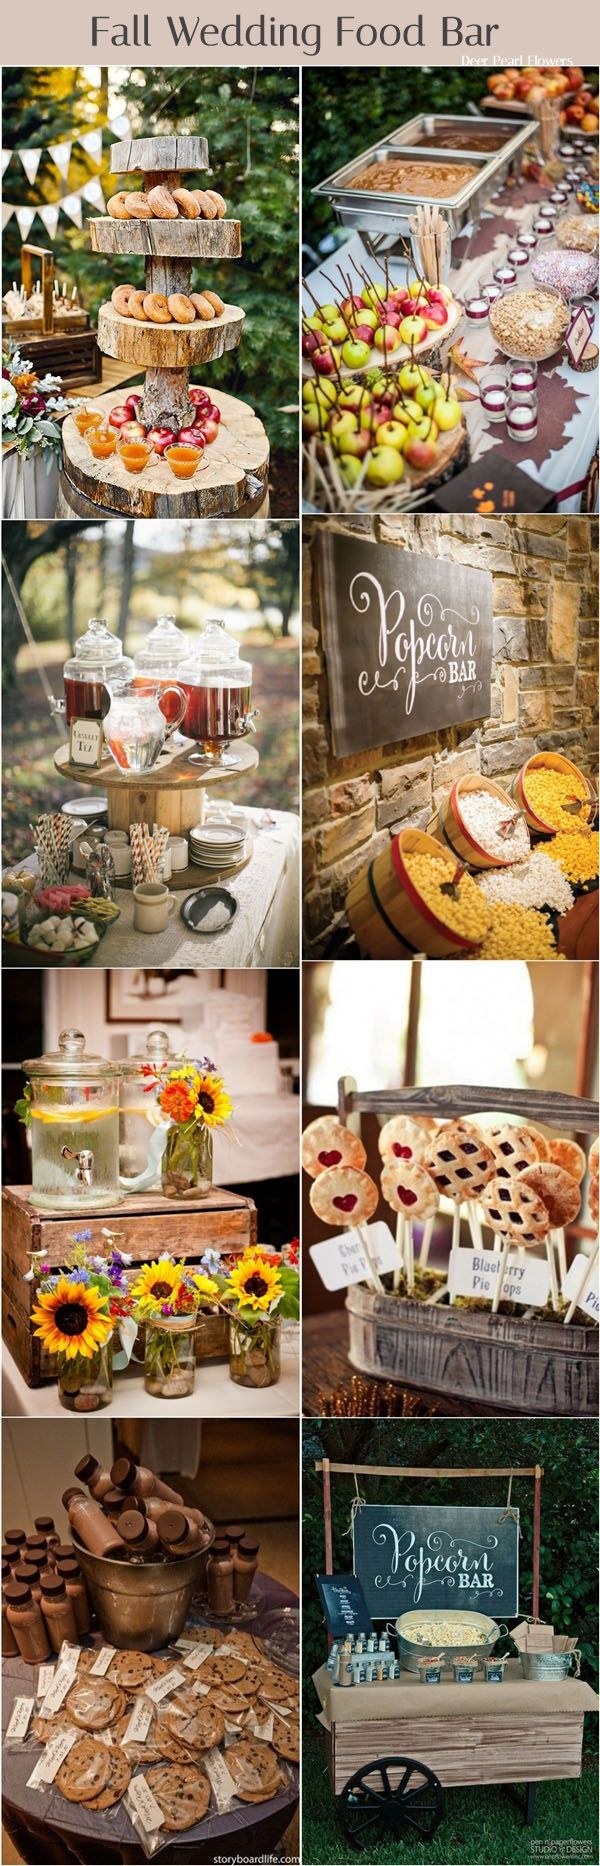 Wedding decorations near me october 2018  of the Best Fall Wedding Ideas for   I do  Pinterest